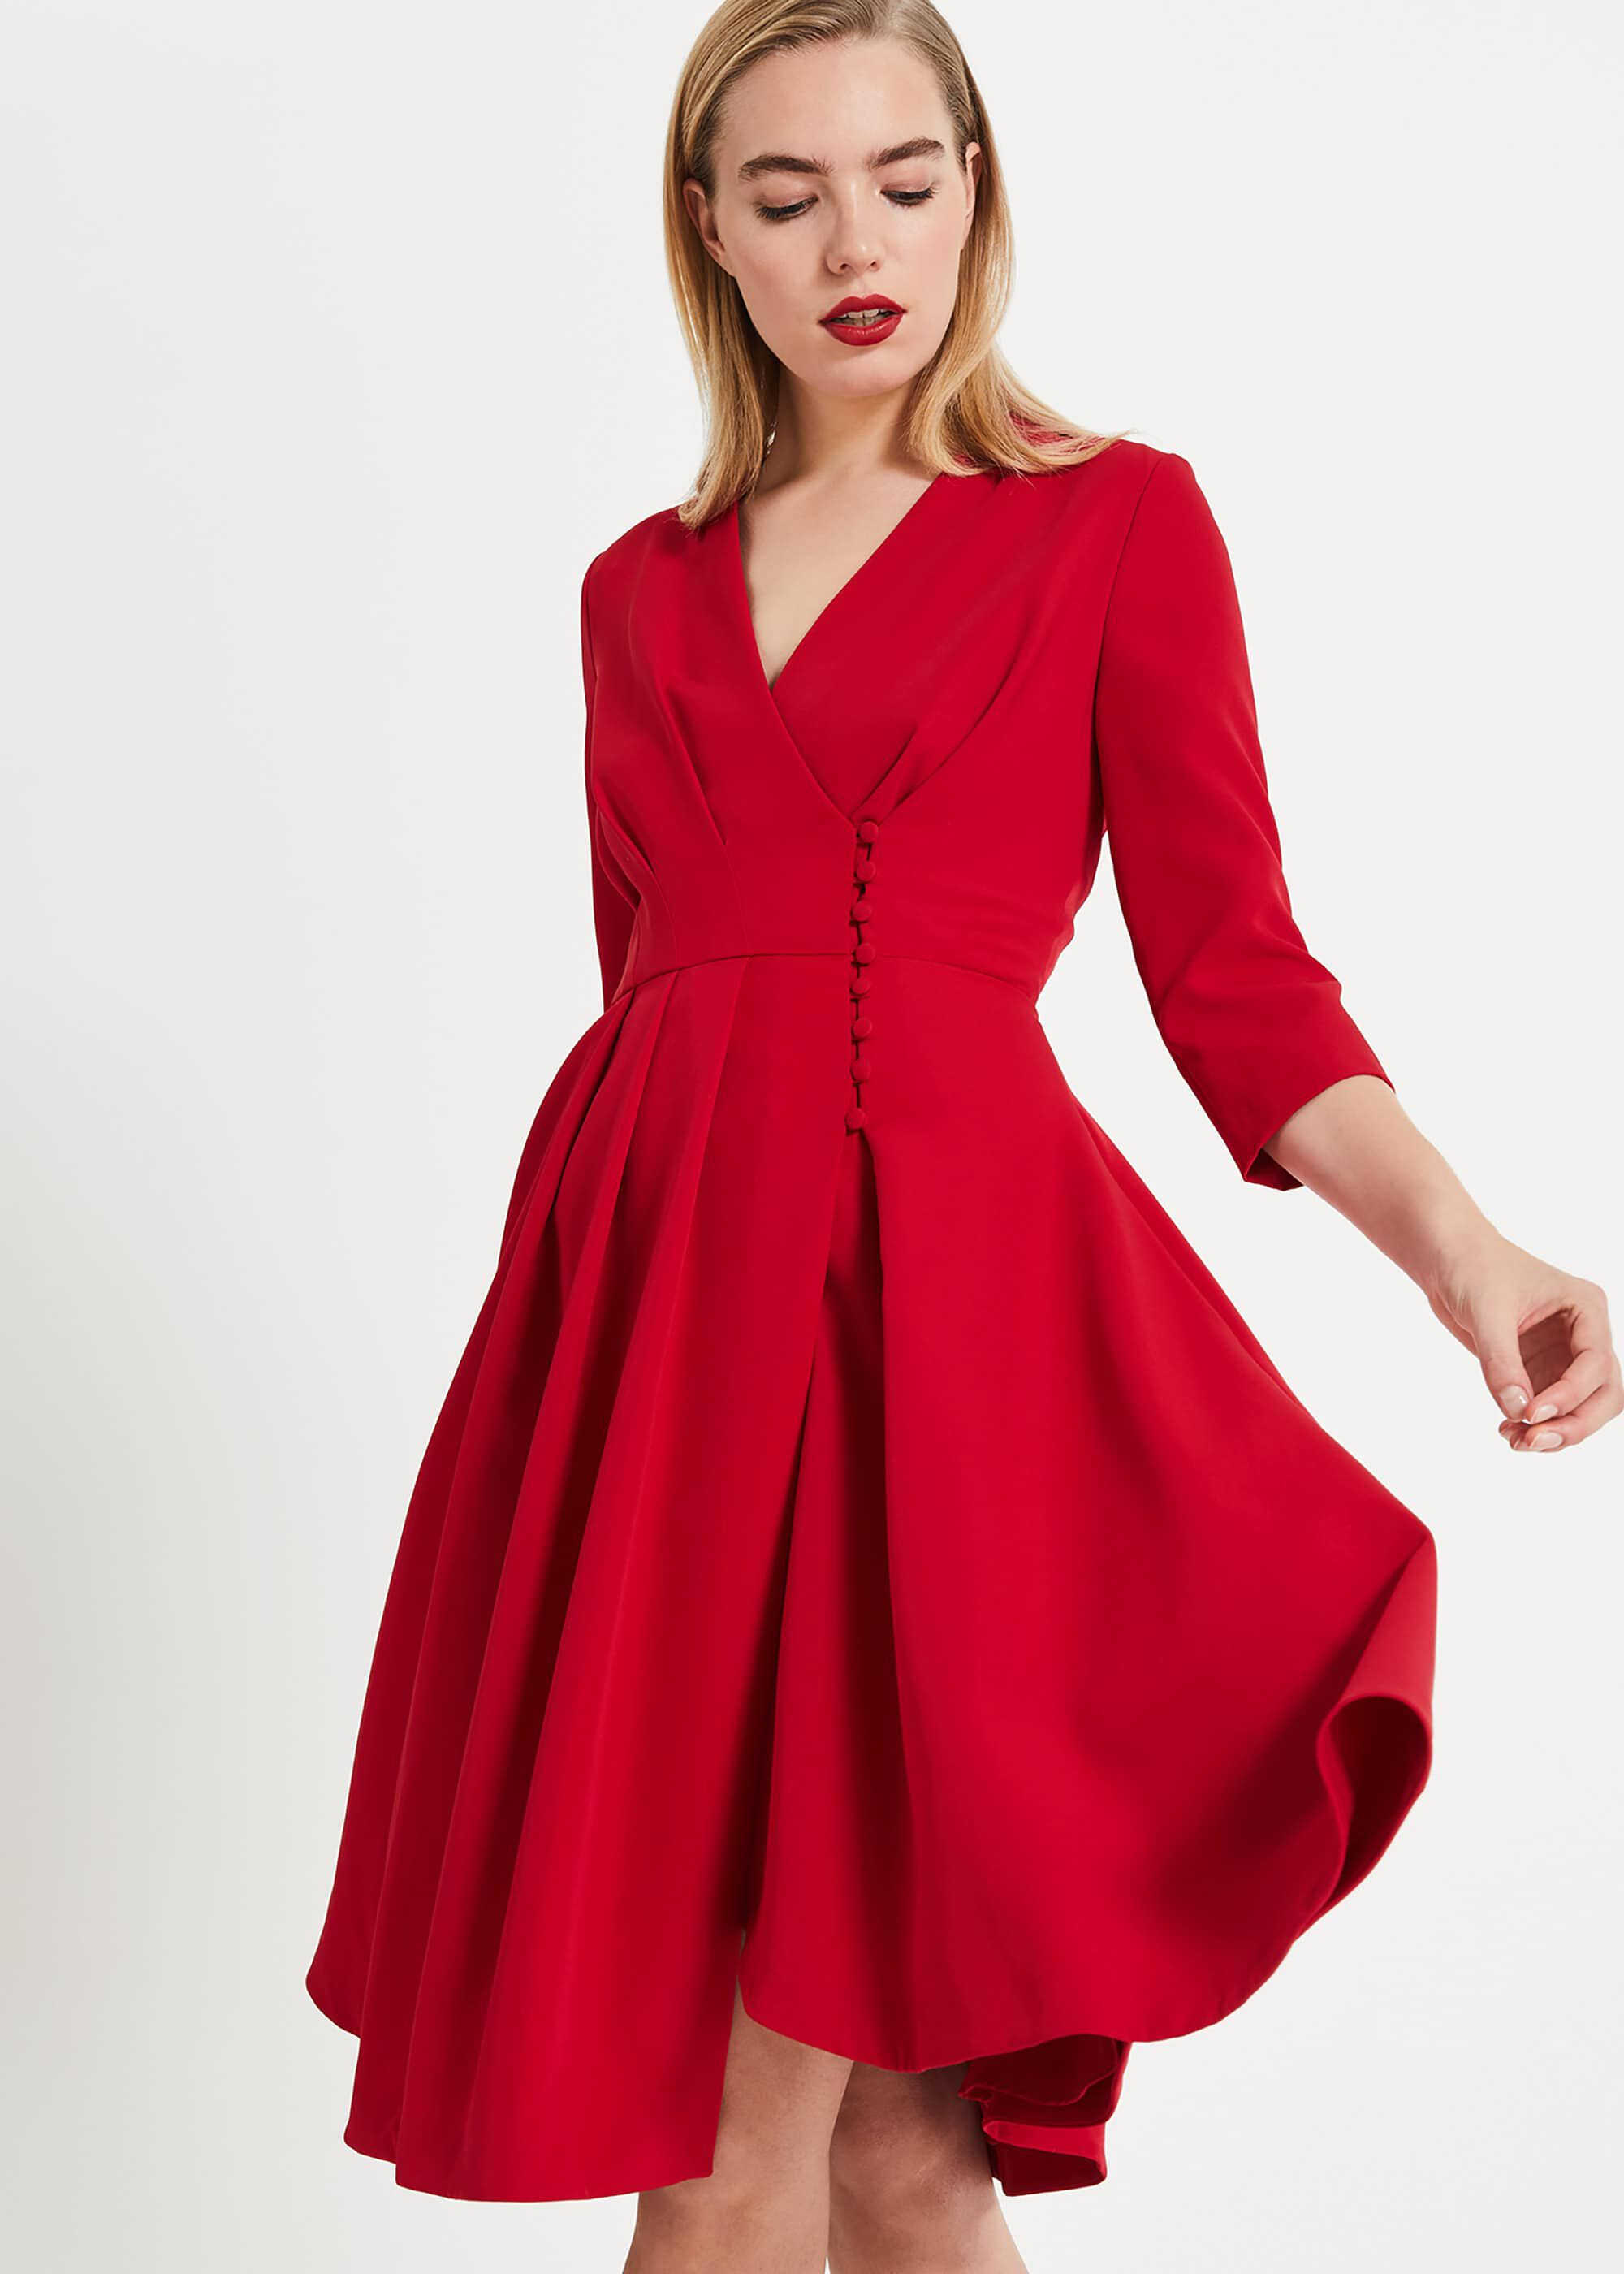 Phase Eight Tania Coat Dress, Red, Shift, Occasion Dress